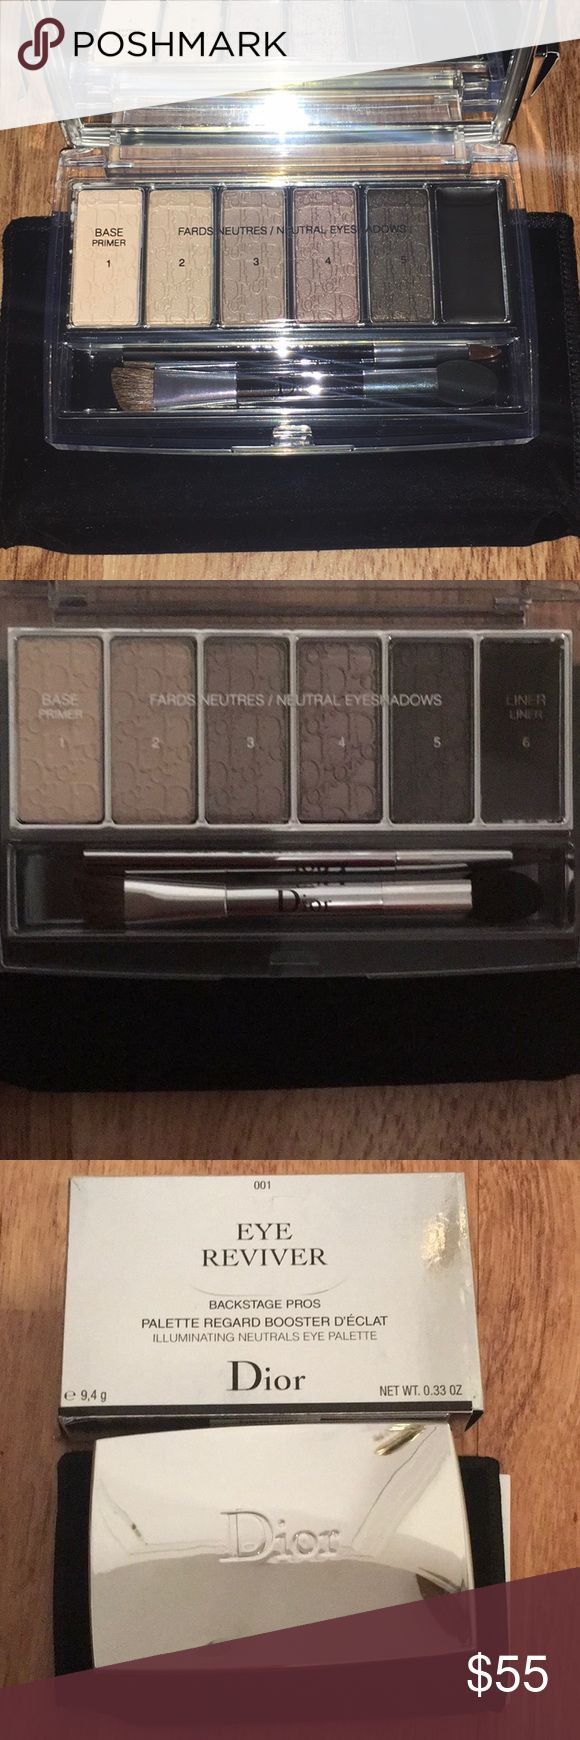 Dior Eye Shadow Palette Eye Reviver-Never Used Beautiful eye shadow palette with neutral colors flattering on all skin tones.  This palette has been been used and comes with all original packaging. Dior Makeup Eyeshadow